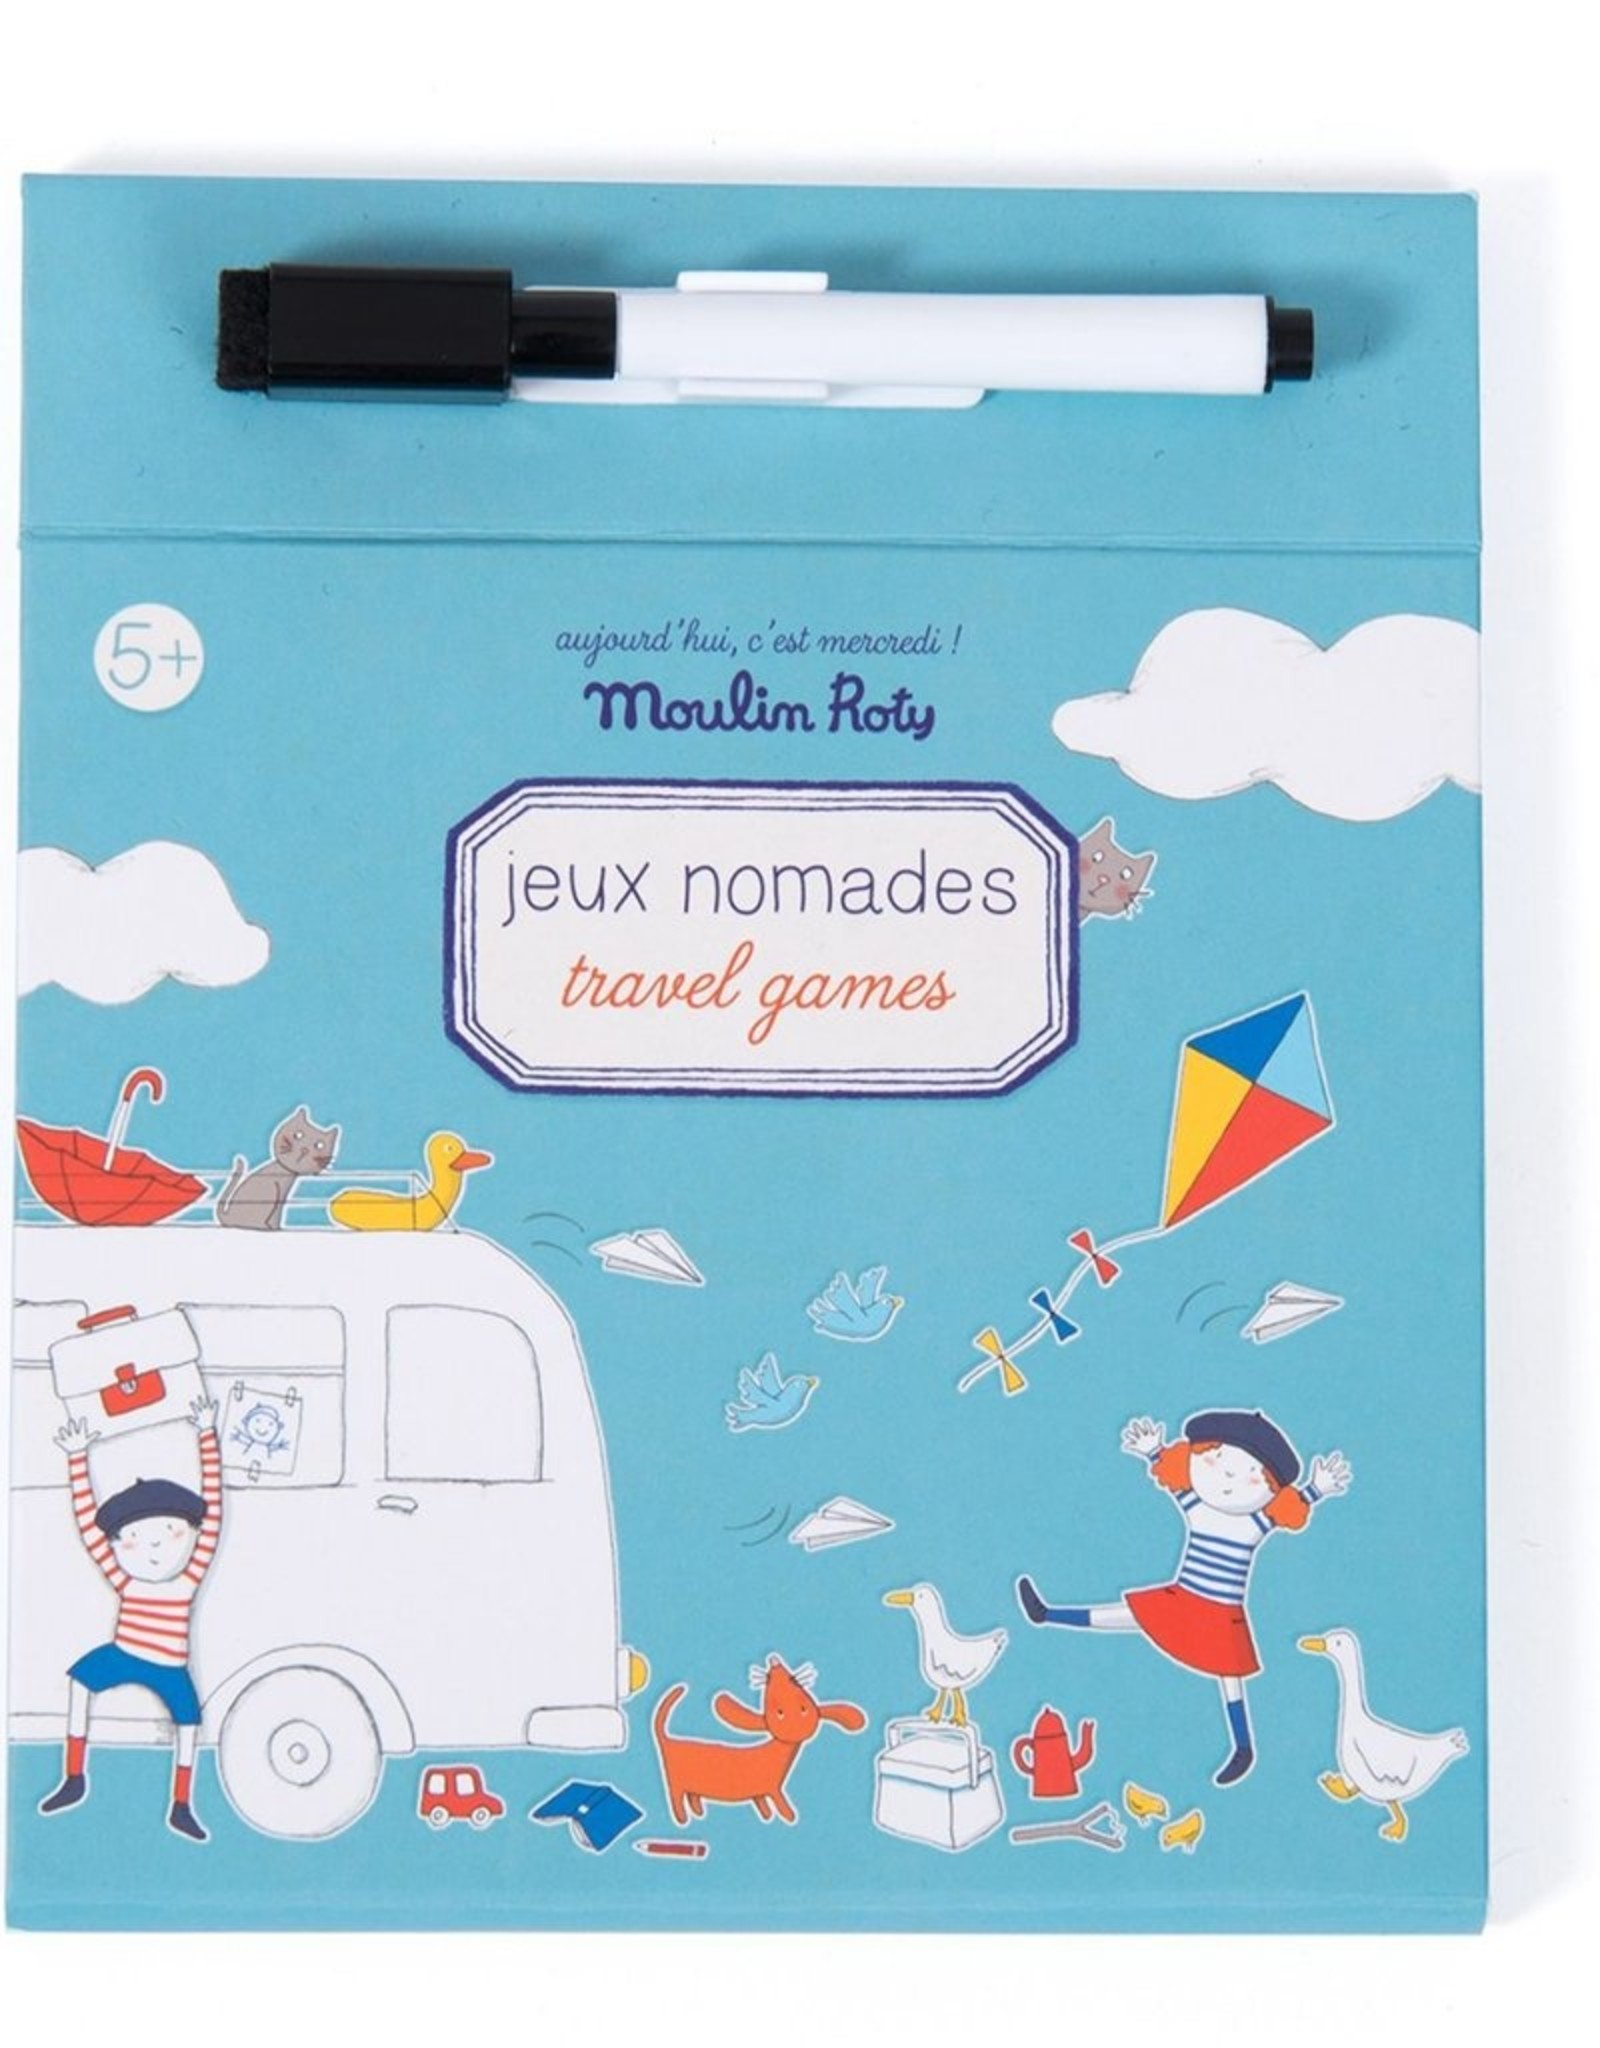 Moulin Roty Travel Games